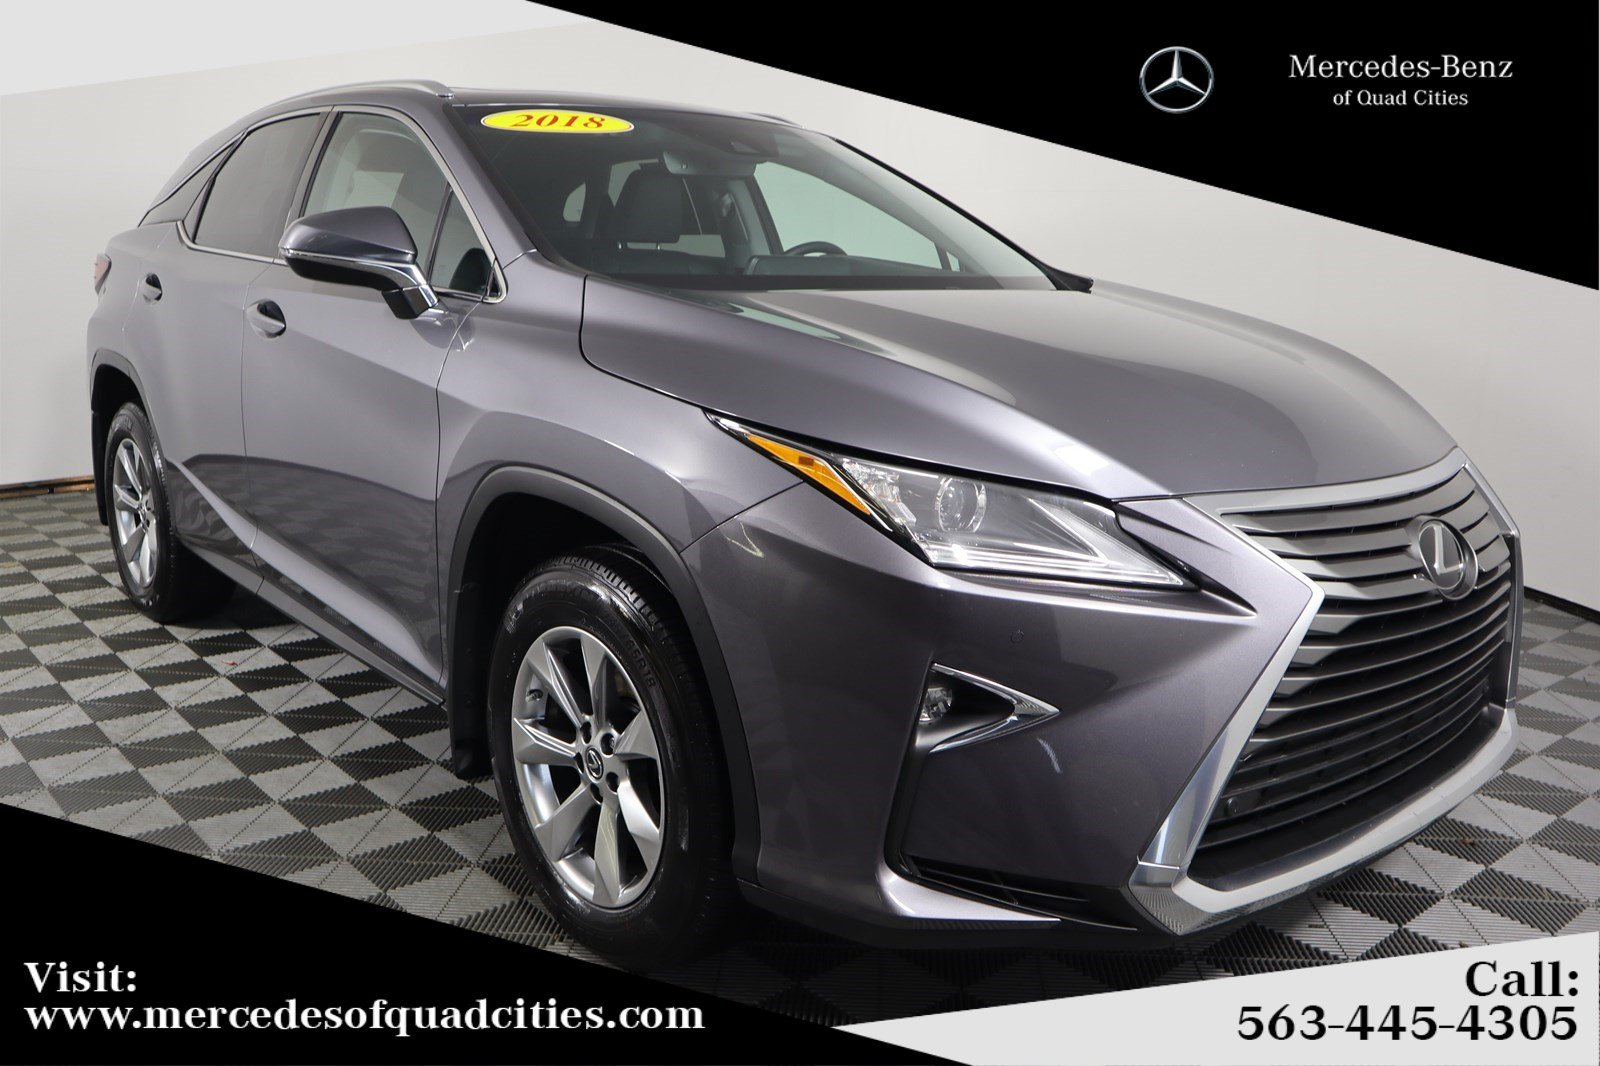 Pre-Owned 2018 Lexus RX 350